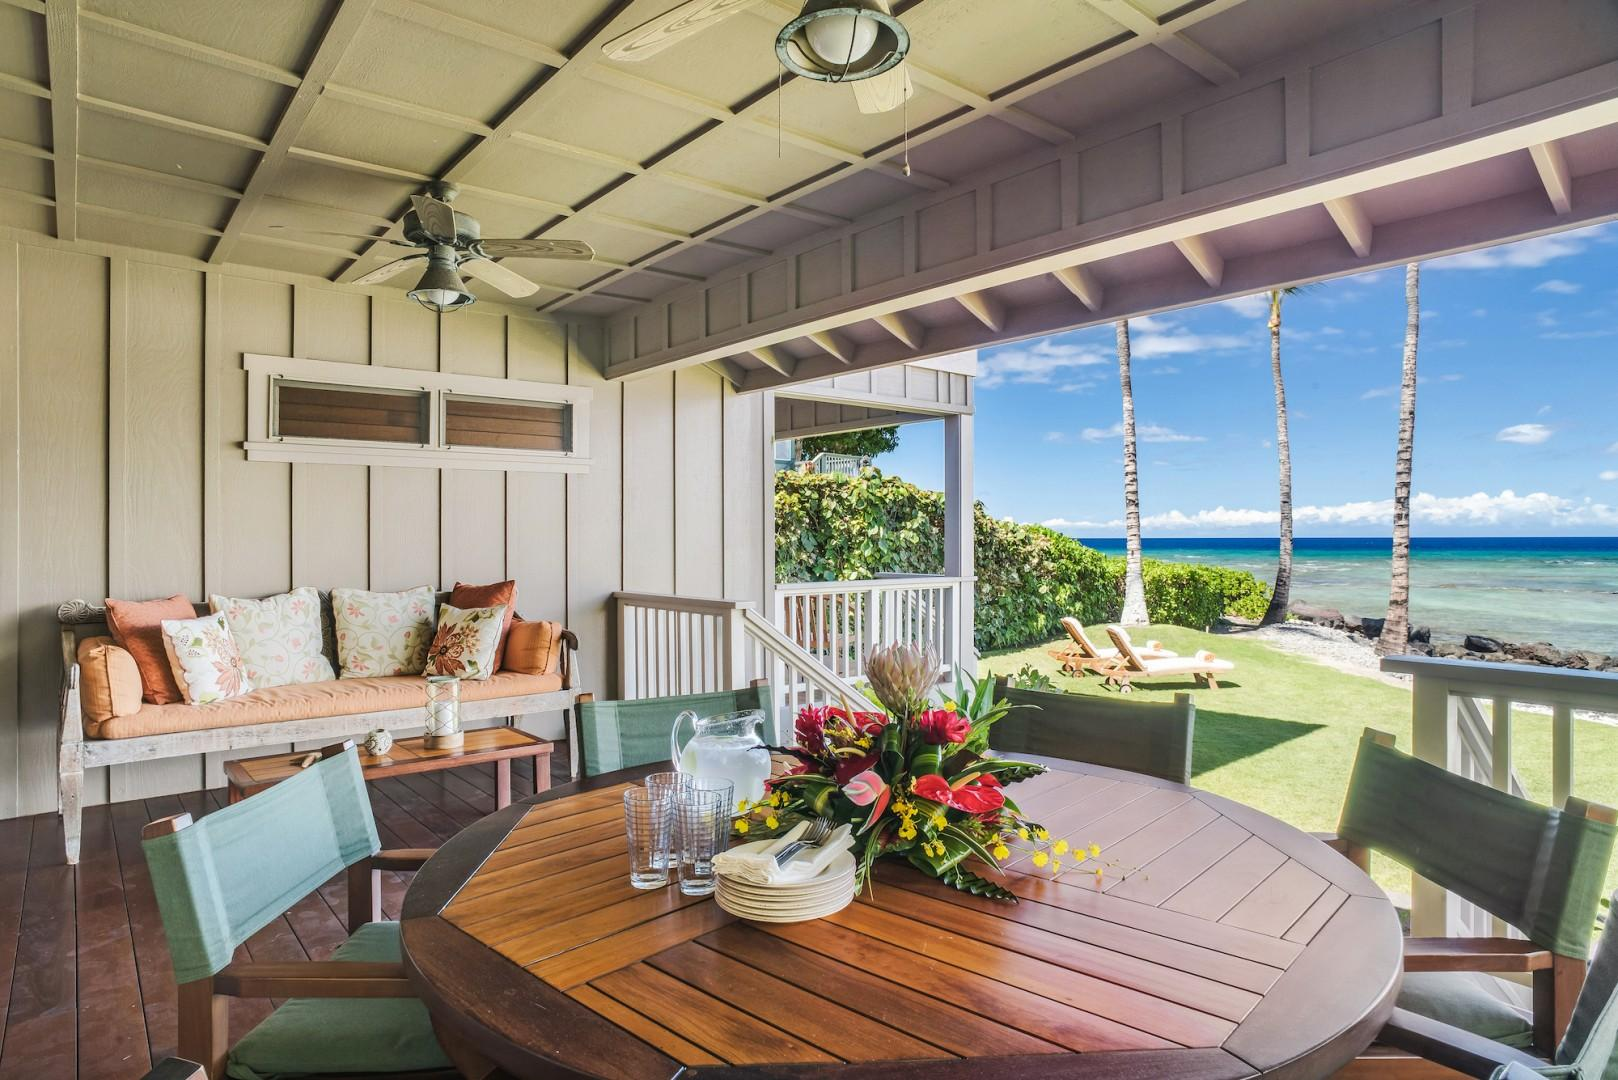 Main Lanai Off Living Room, an Ideal Spot to Gather, Dine and Relax